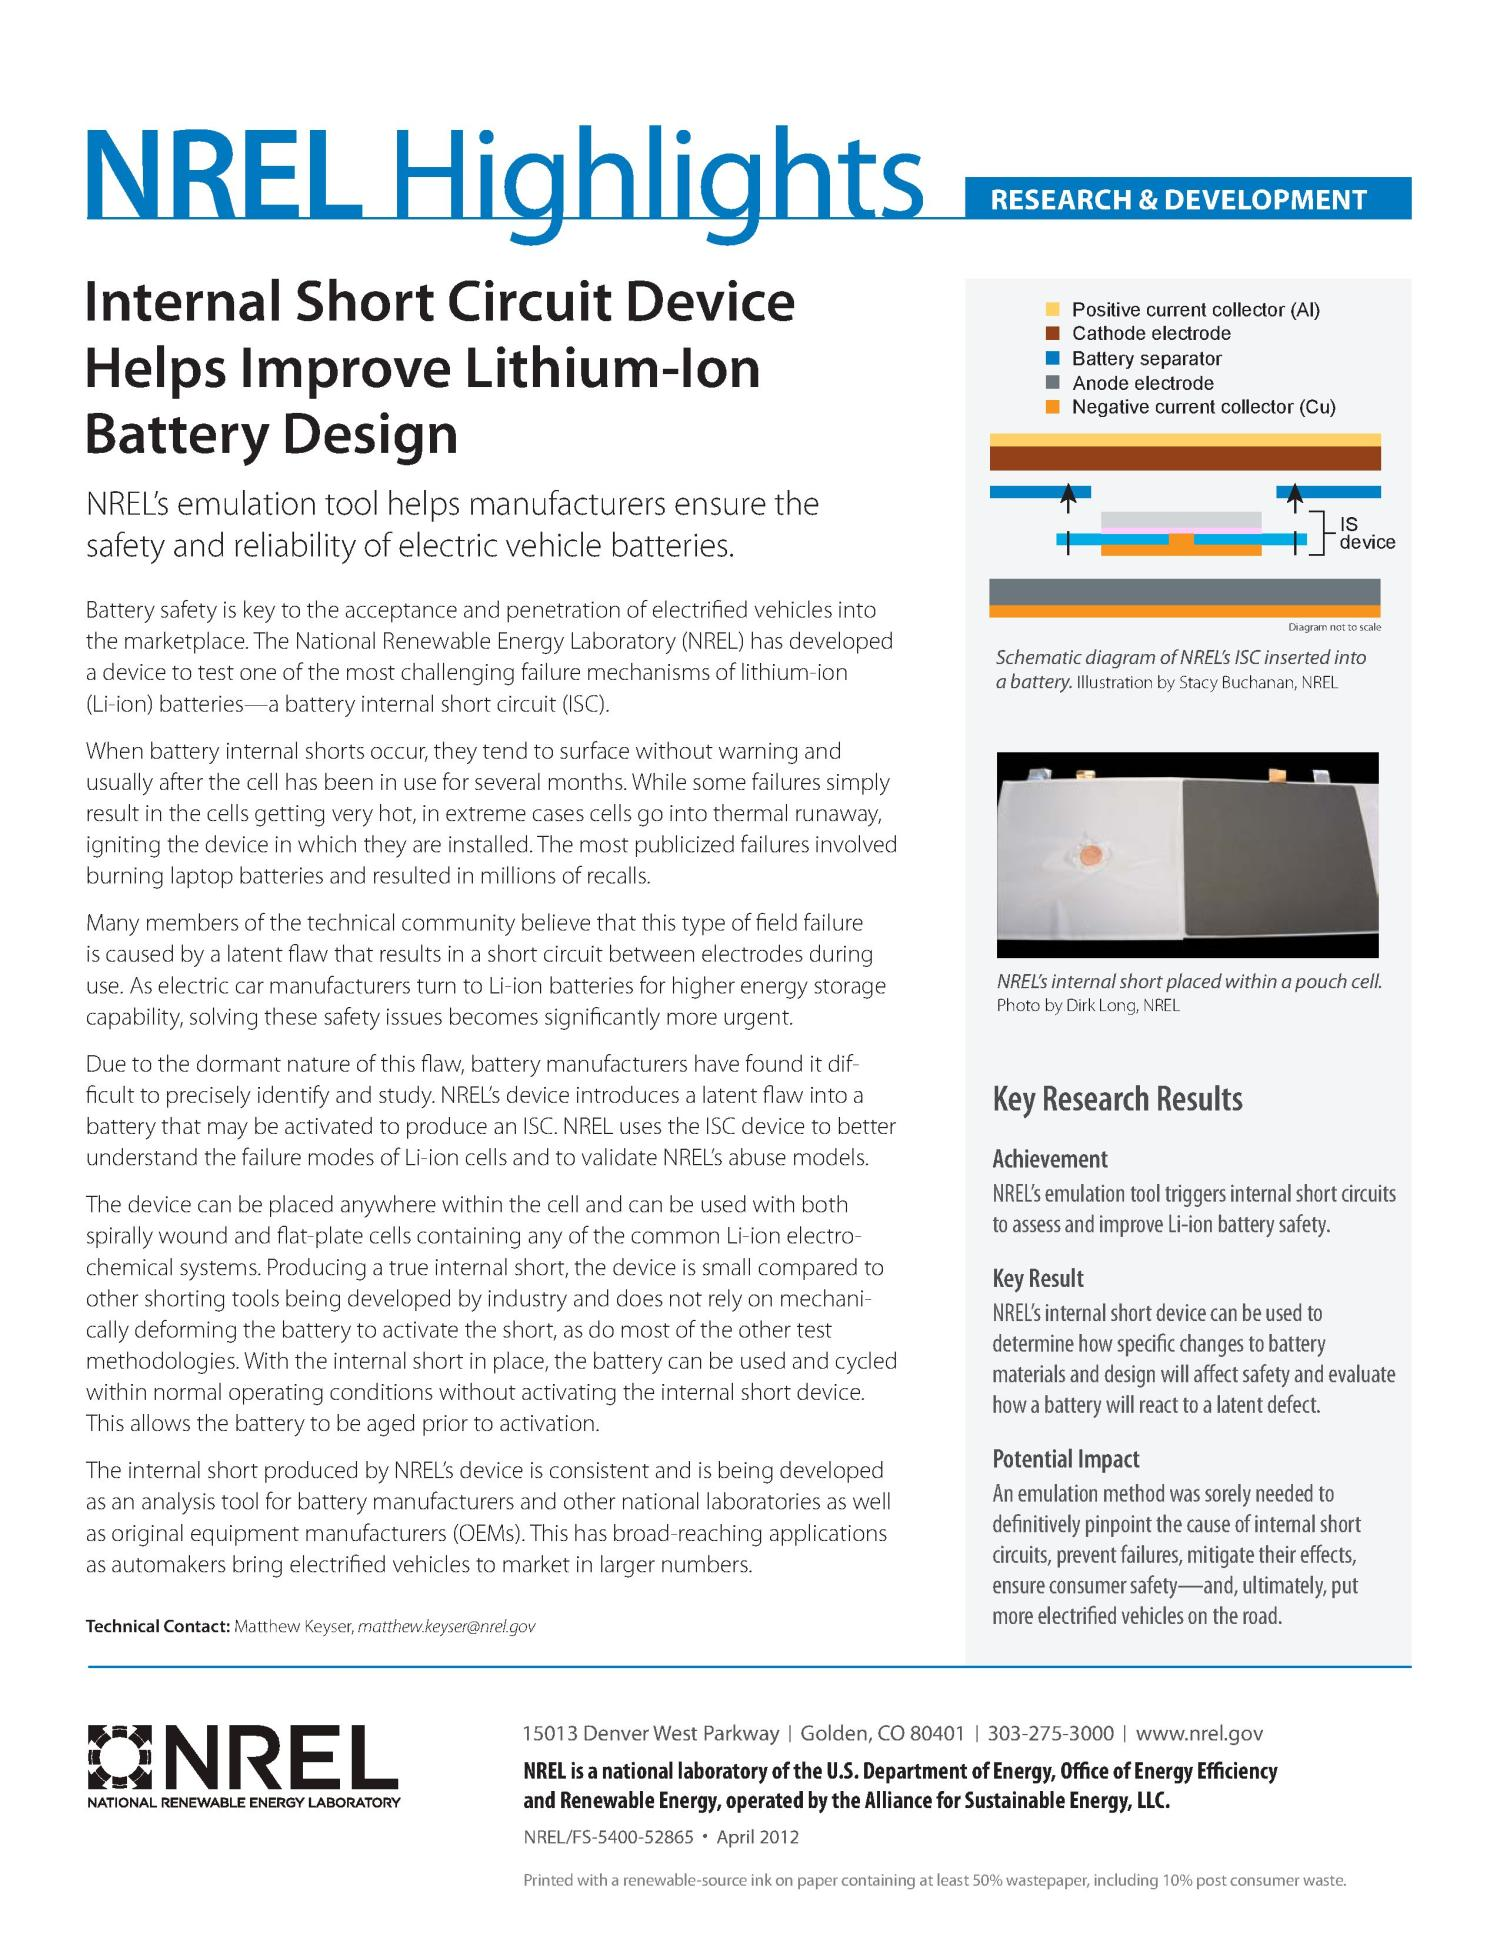 Internal Short Circuit Device Helps Improve Lithium Ion Battery Car Tester Testing Machine Buy Design Fact Sheet Digital Library